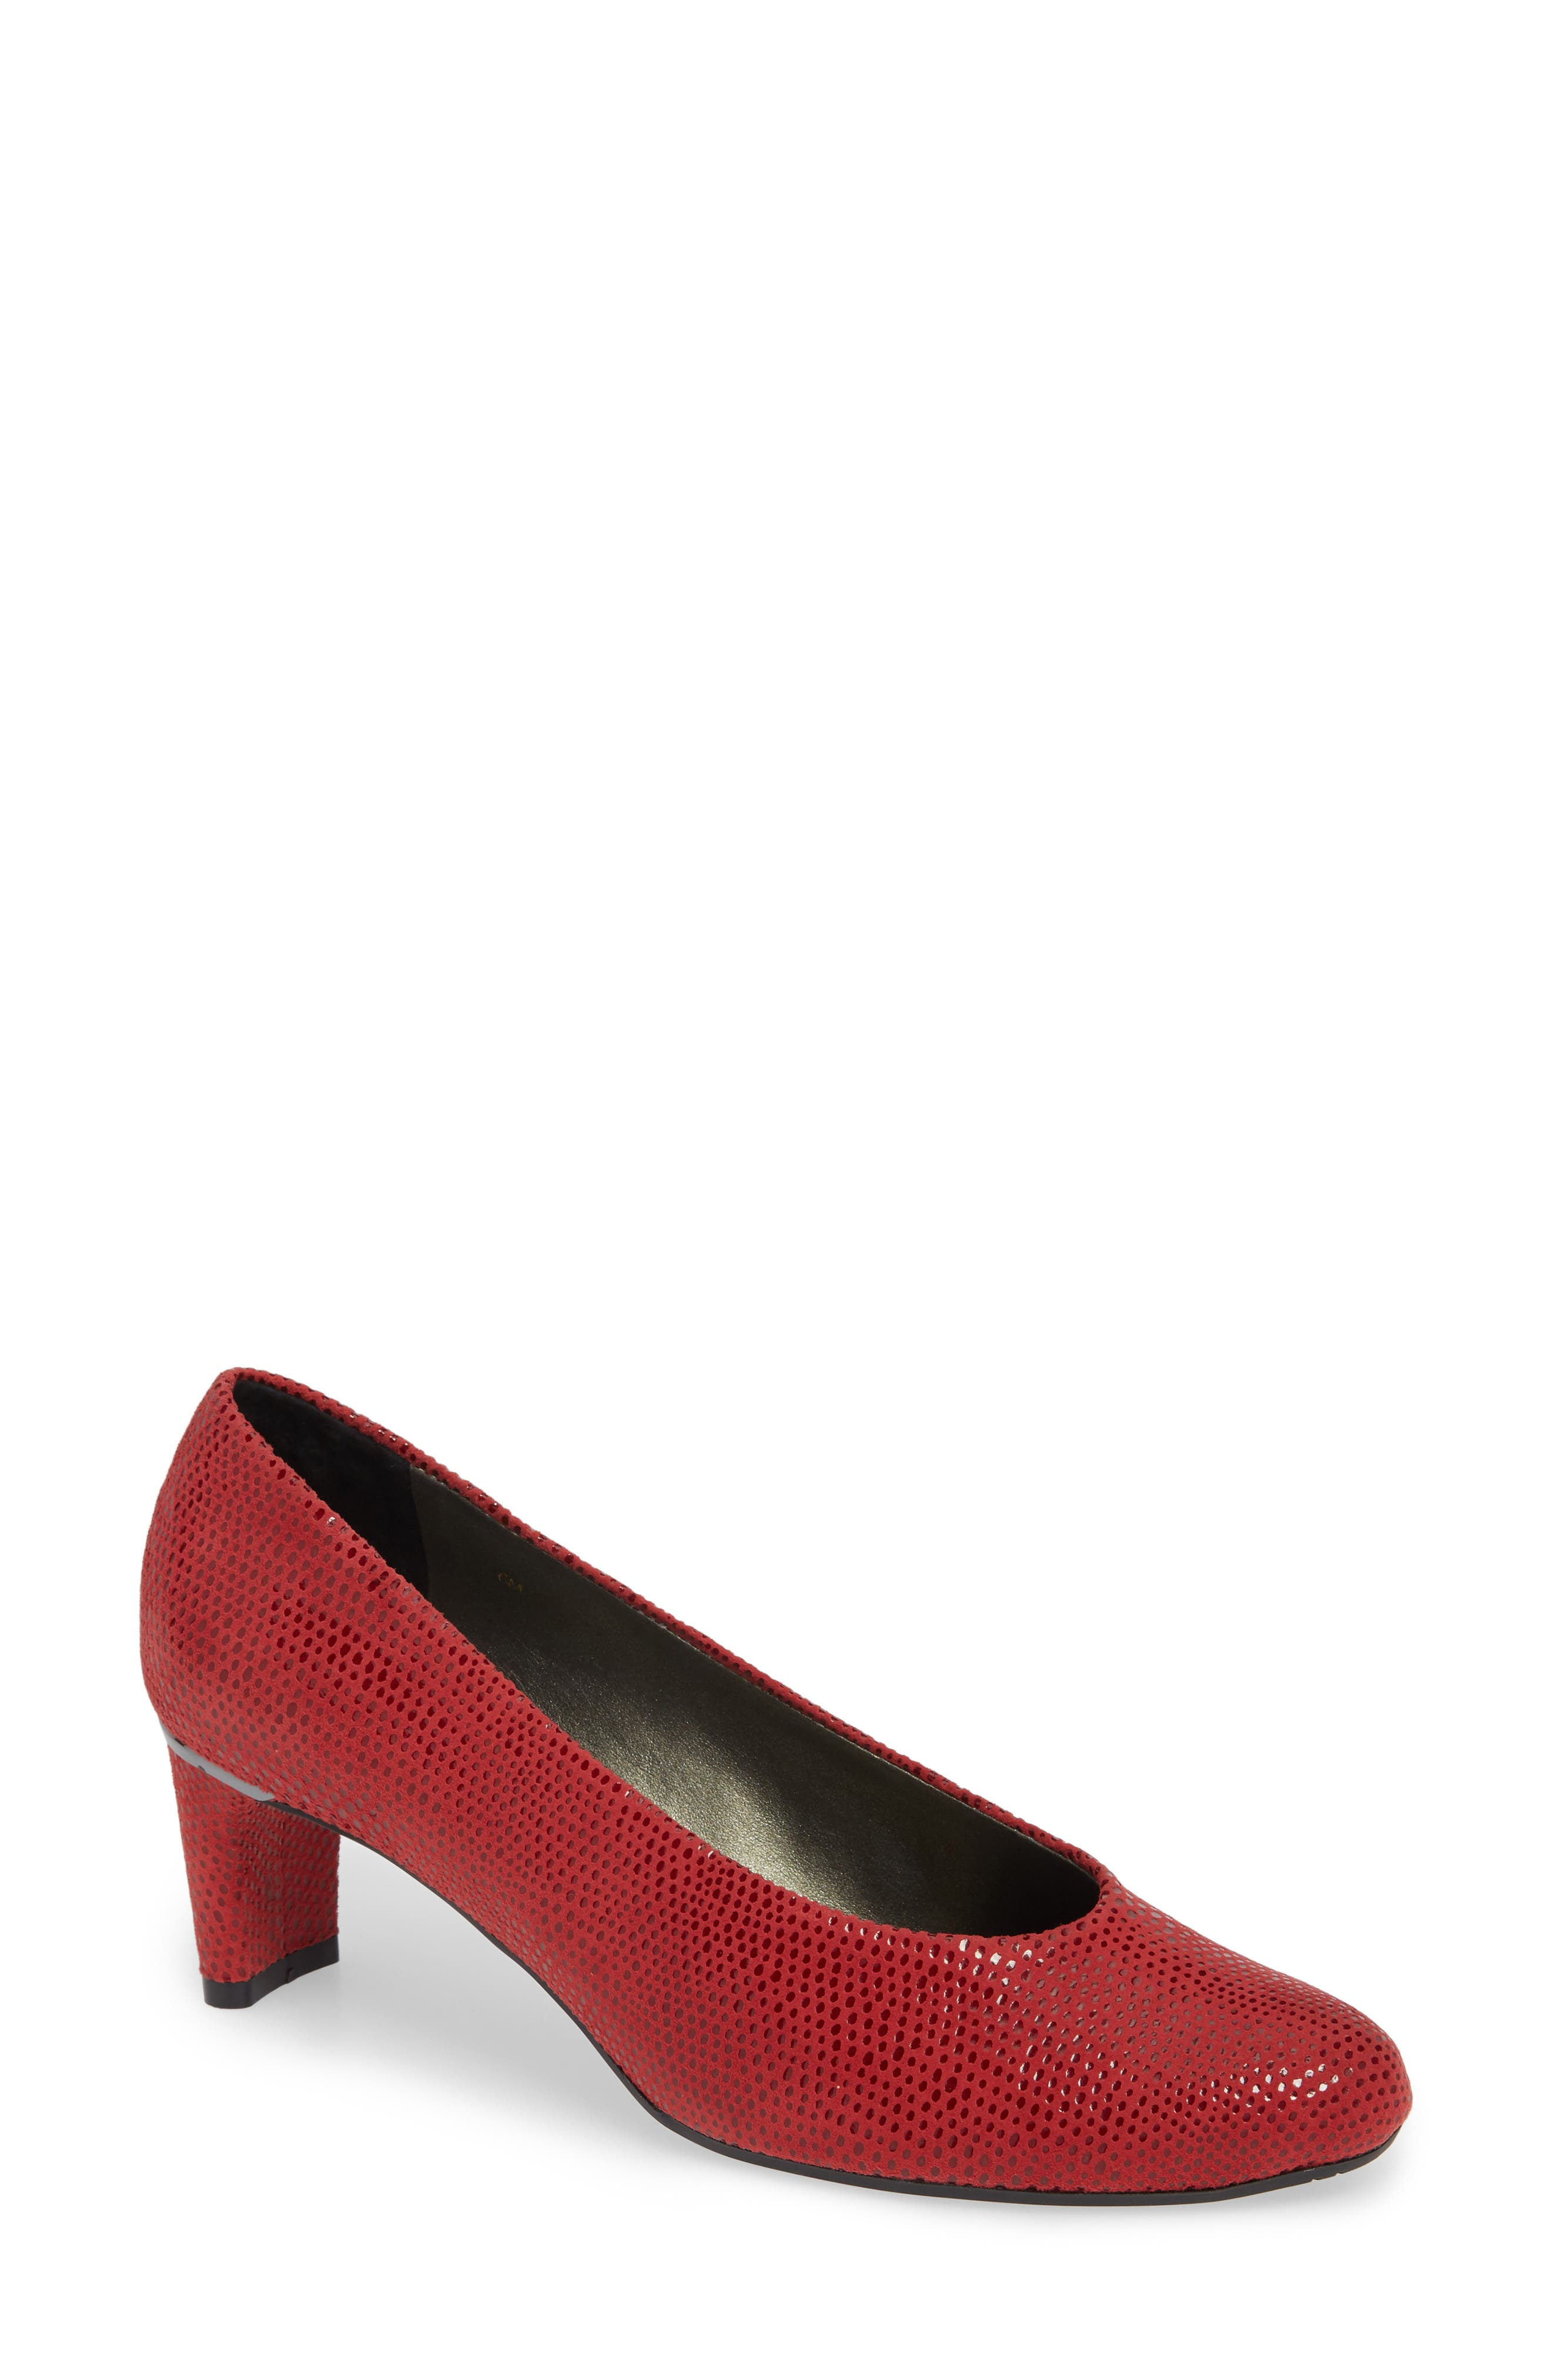 'Dayle' Pump,                             Main thumbnail 1, color,                             RED LEATHER